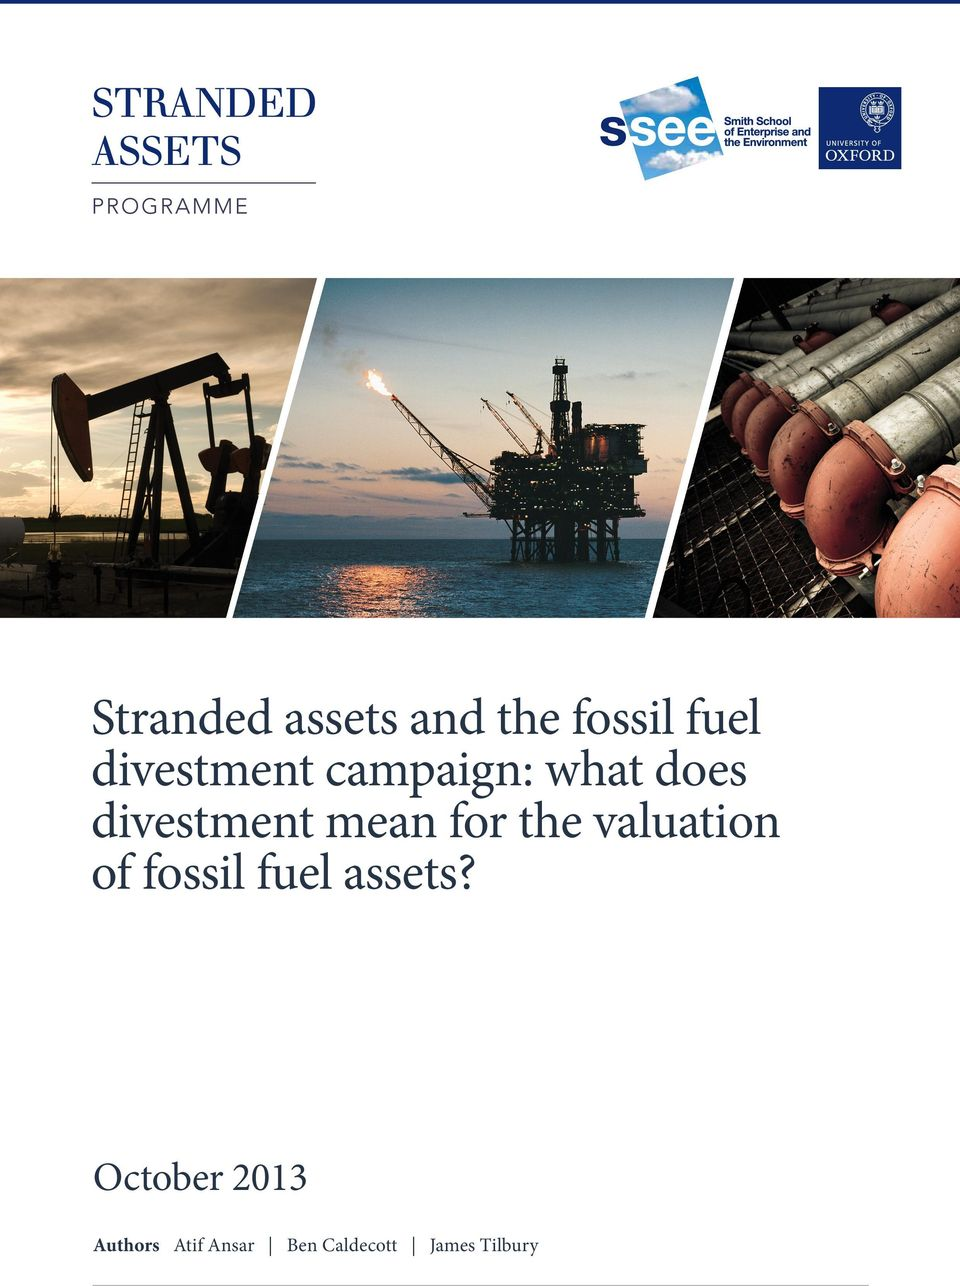 mean for the valuation of fossil fuel assets?